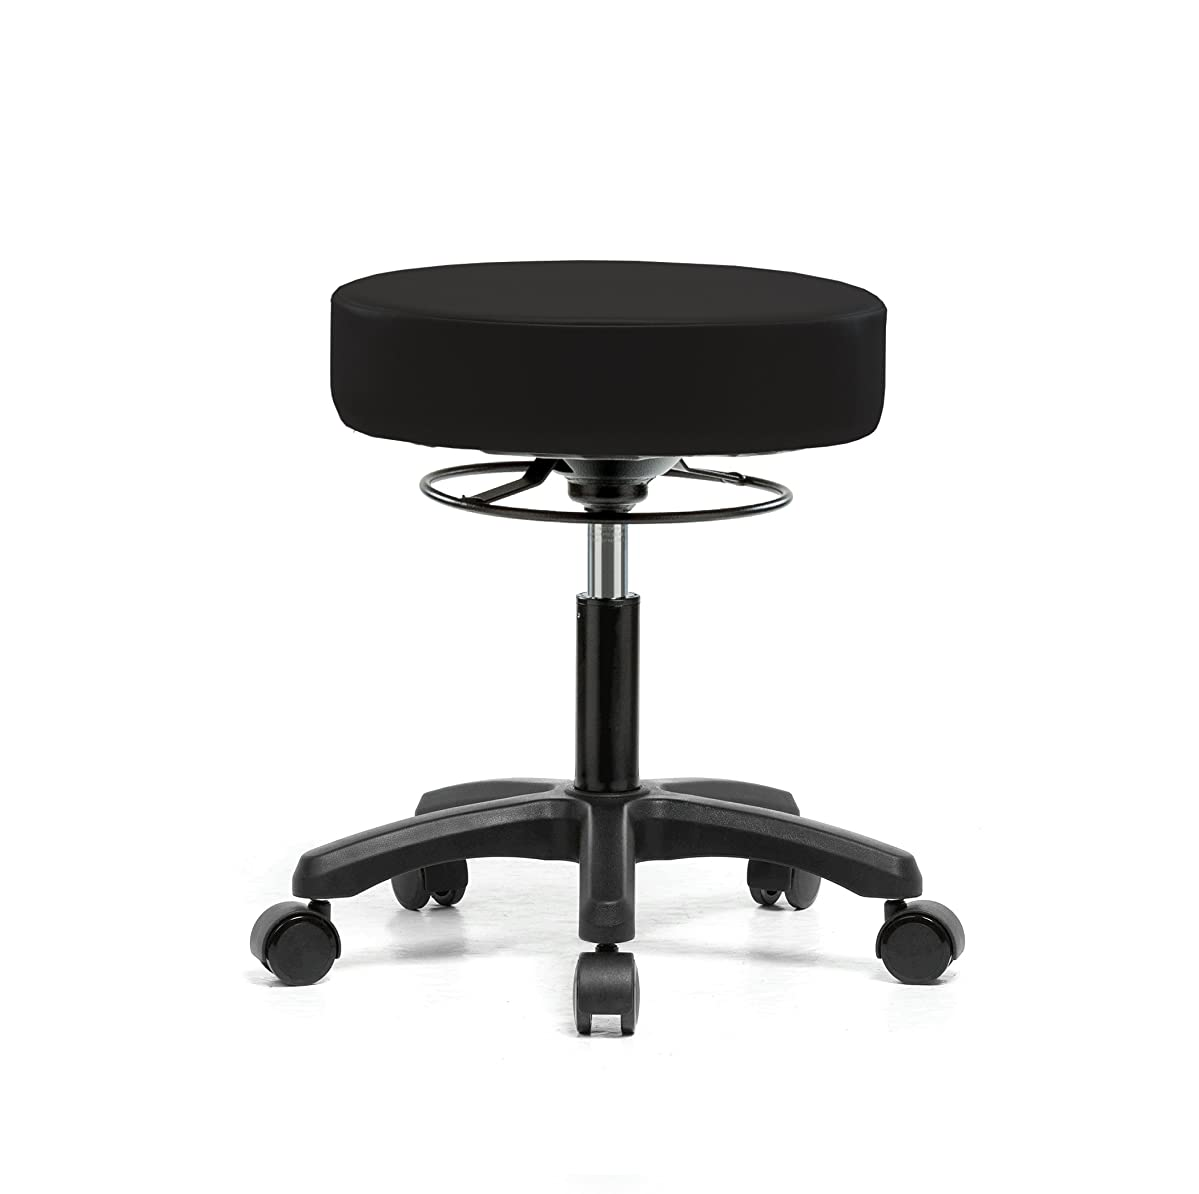 PERCH Life Rolling Height Adjustable Stool for Hardwood & Tile | Desk Height 18-23 inches | 250-pound Weight Capacity | 12 Year Warranty (Black Vinyl)